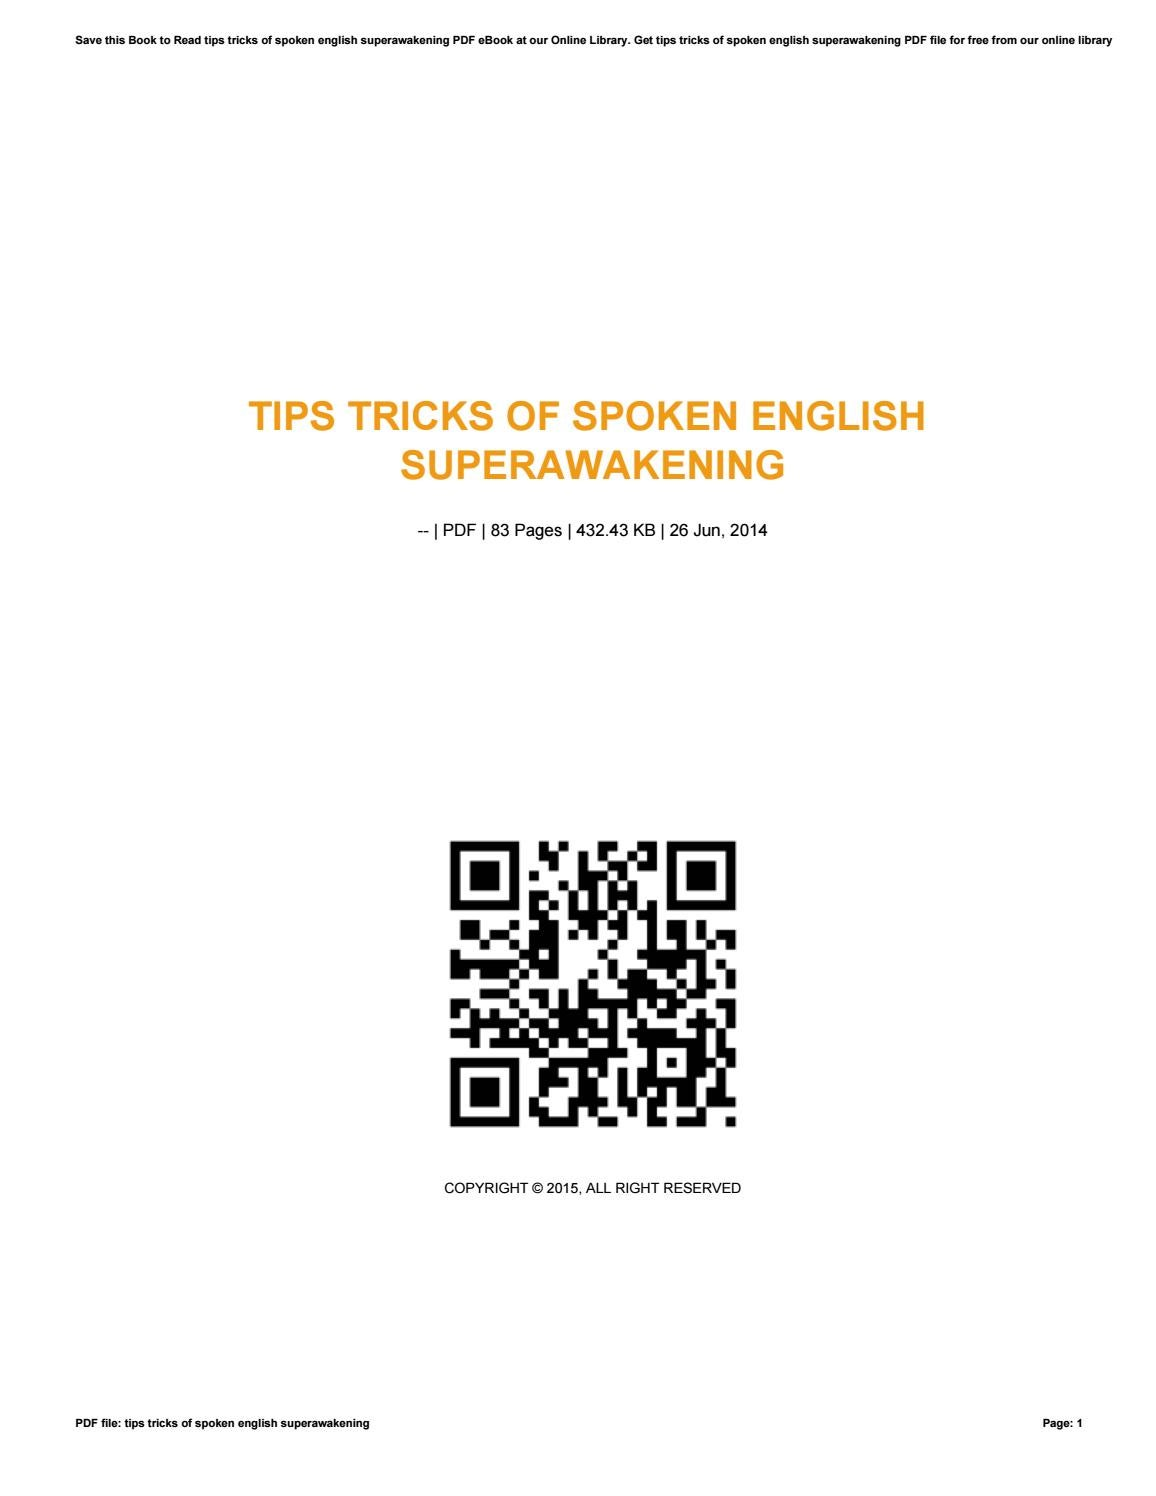 Spoken English Tutorial Ebook